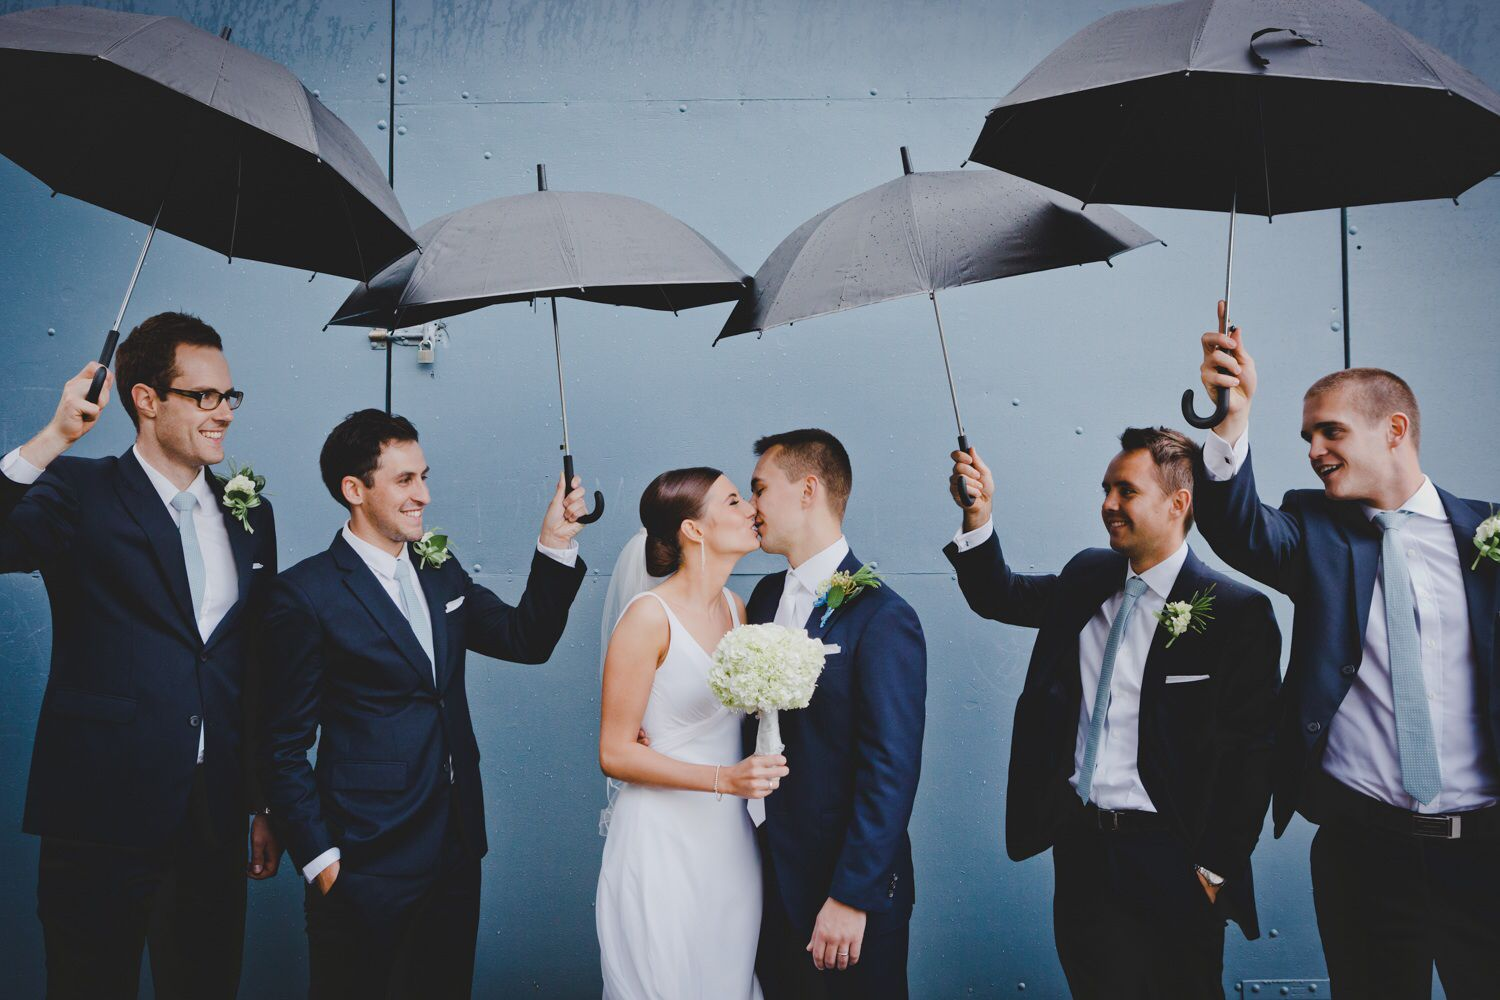 Rainy wedding photo navy suits black umbrellas wedding pinterest